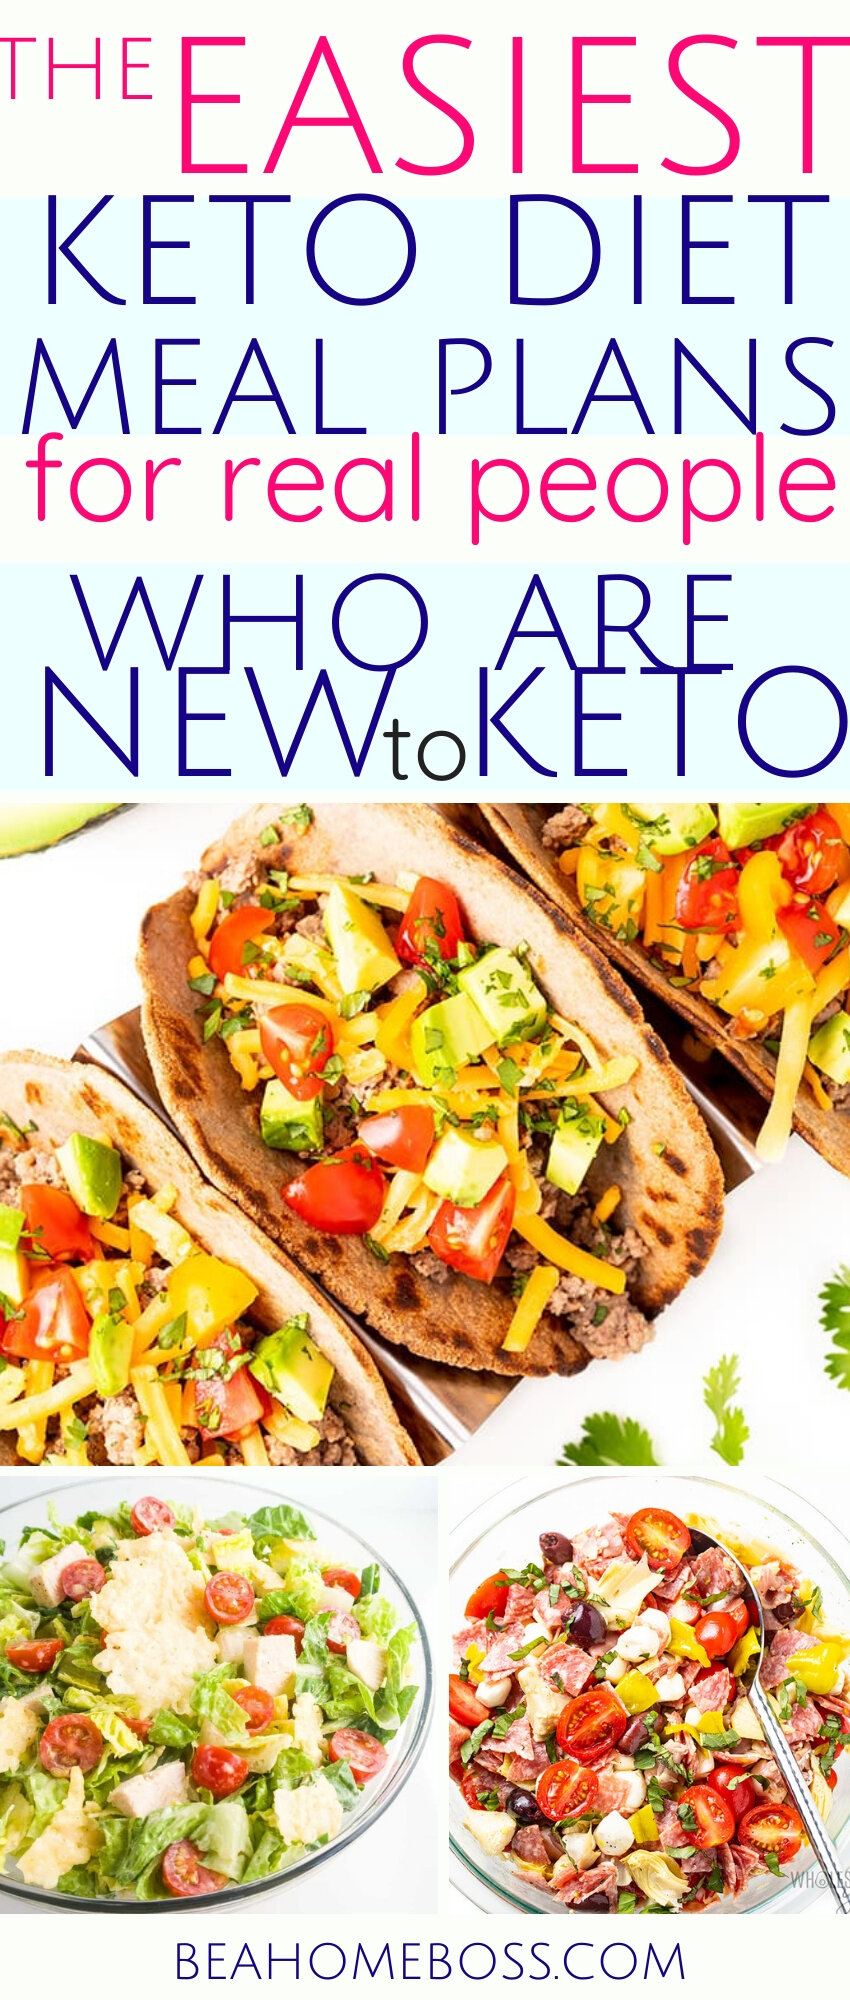 The Only And Easiest Keto Meal Plan You Will Need To Lose Weight Home Boss